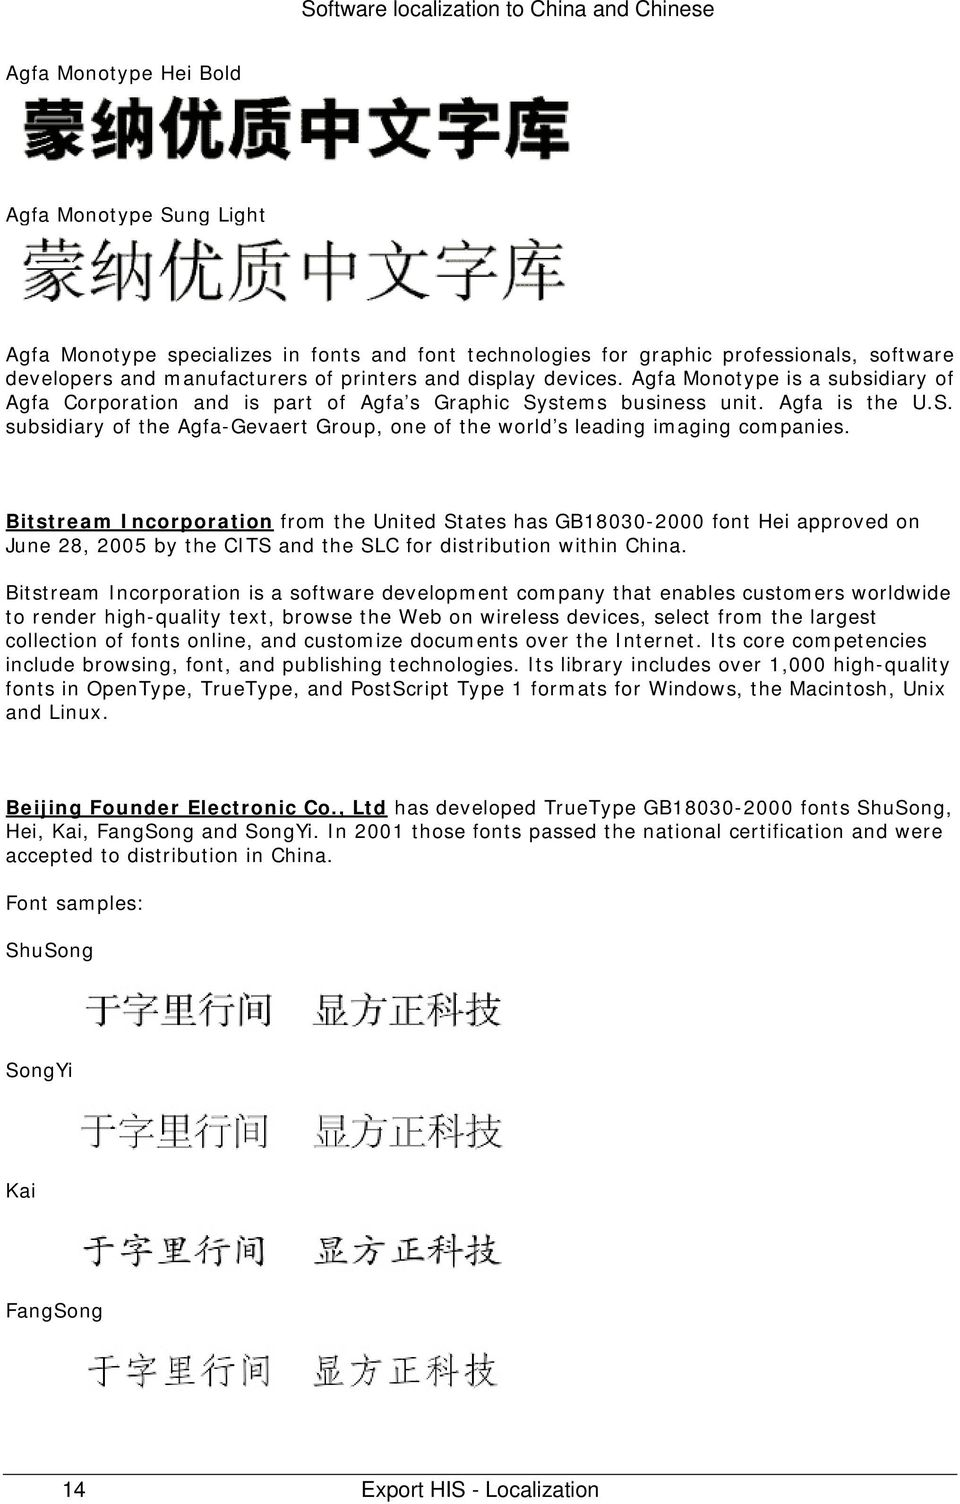 Bitstream Incorporation from the United States has GB18030-2000 font Hei approved on June 28, 2005 by the CITS and the SLC for distribution within China.